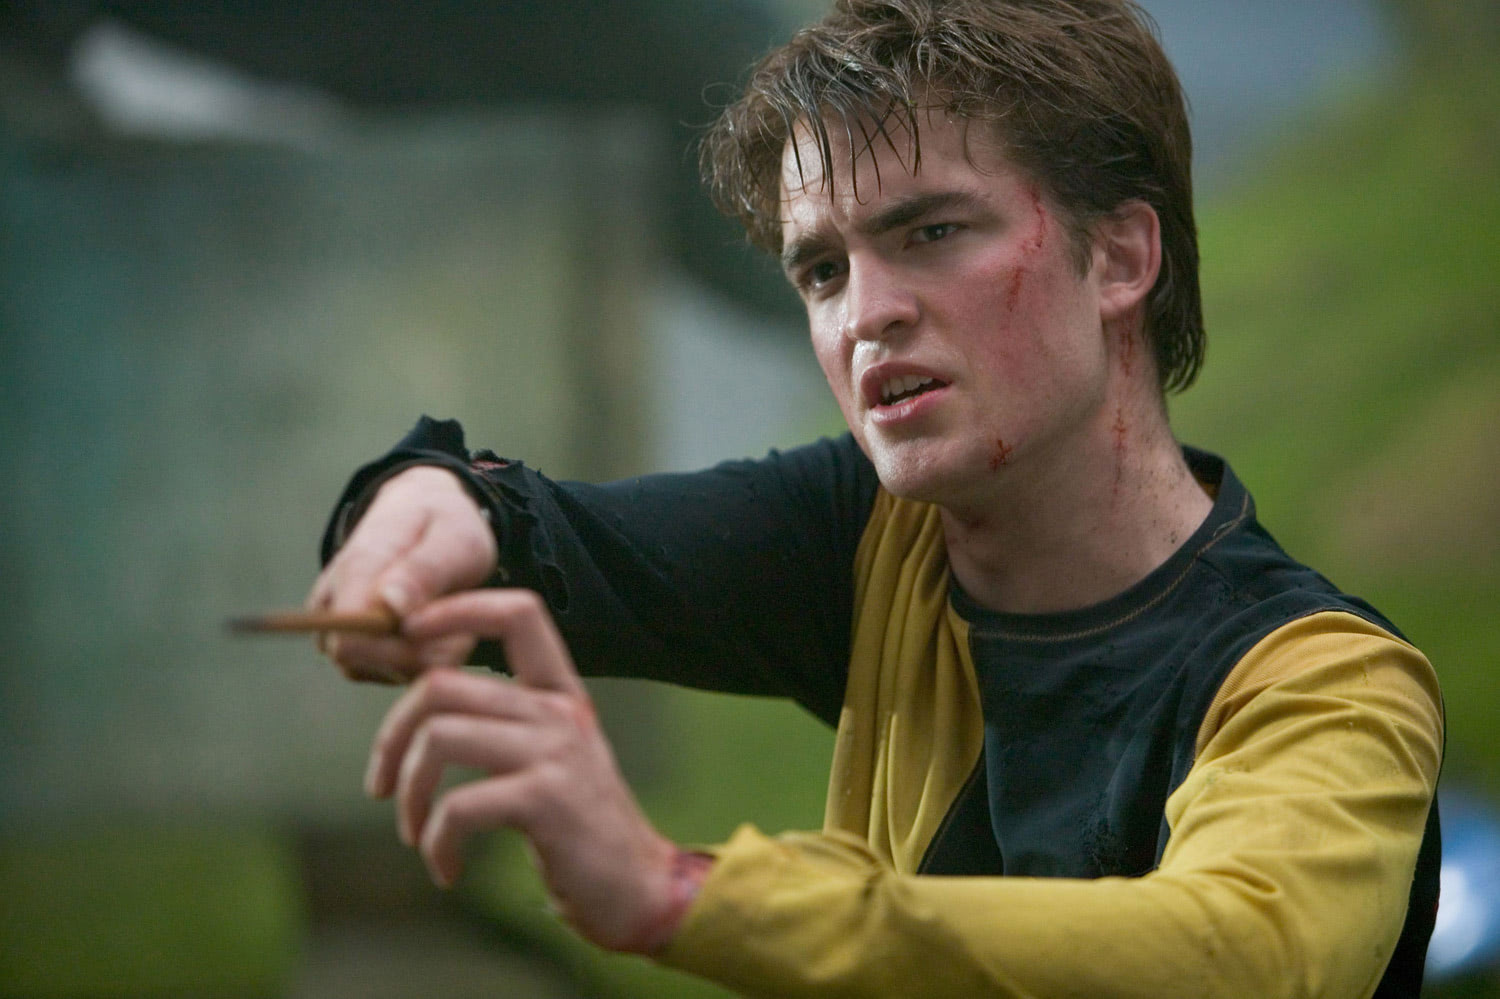 Cedric with wand raised